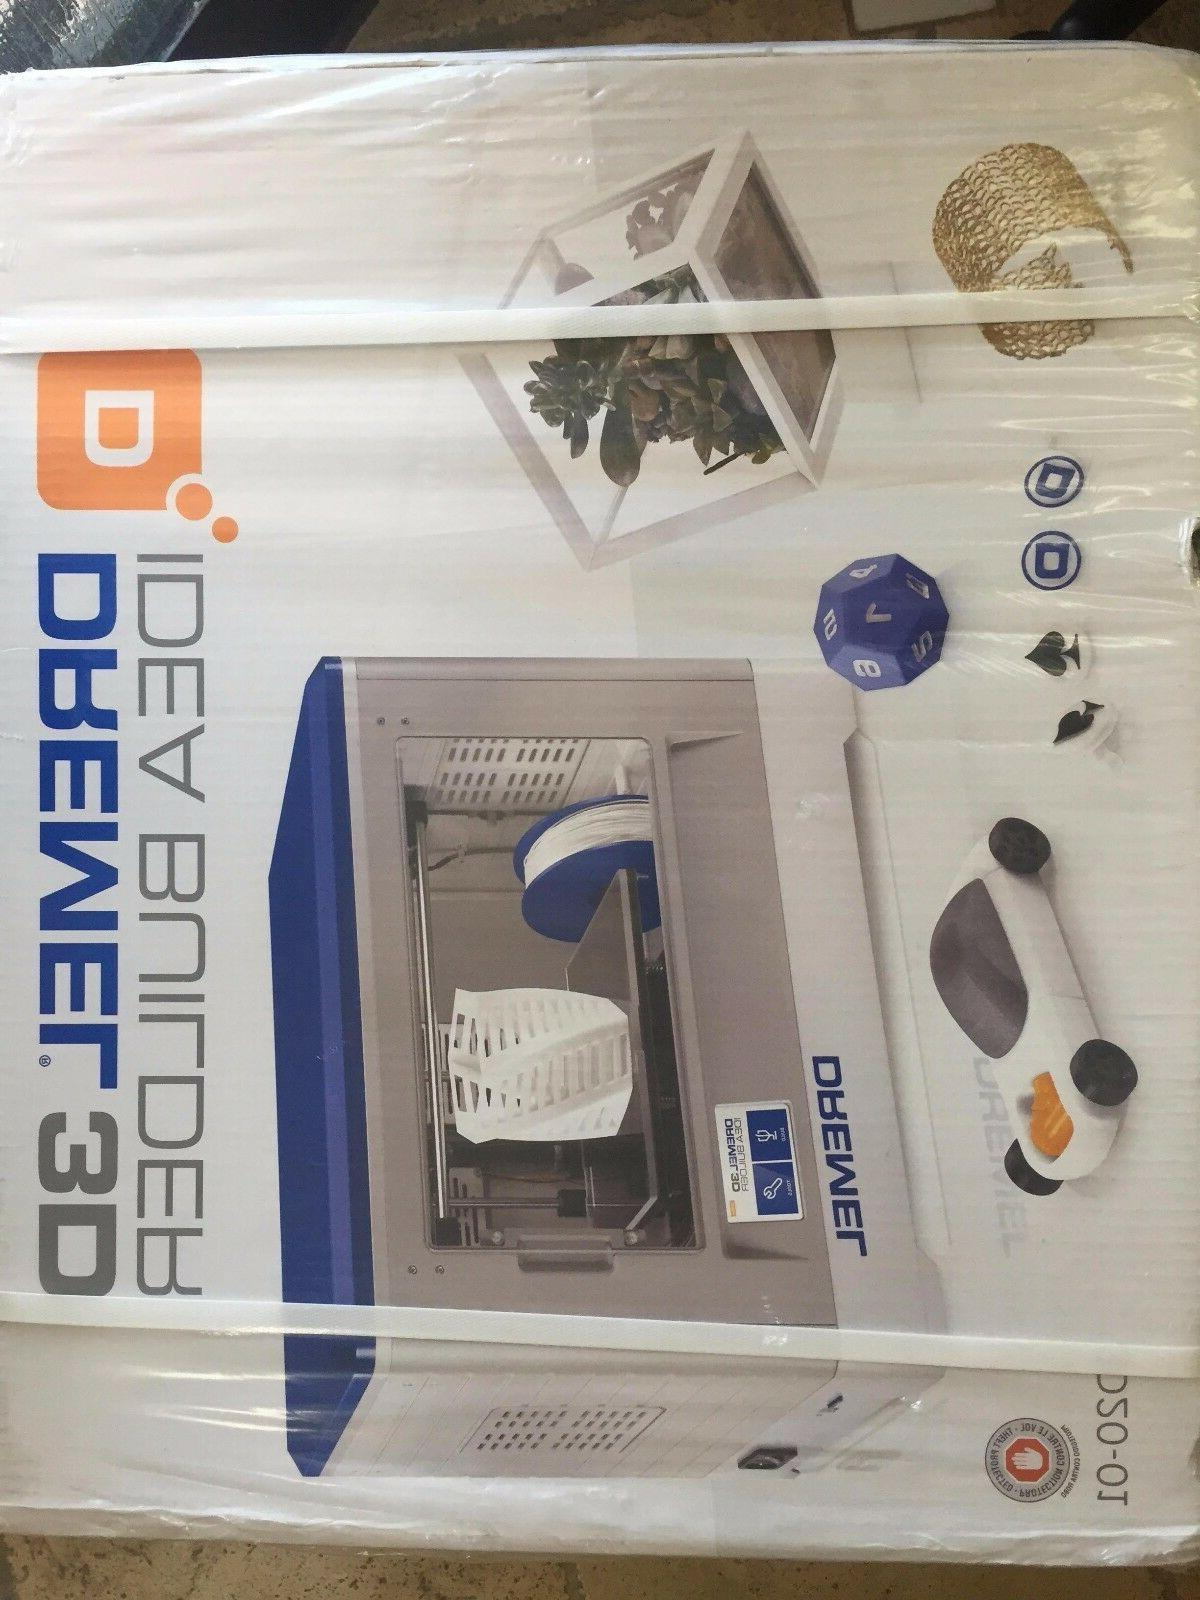 digilab 3d20 3d printer